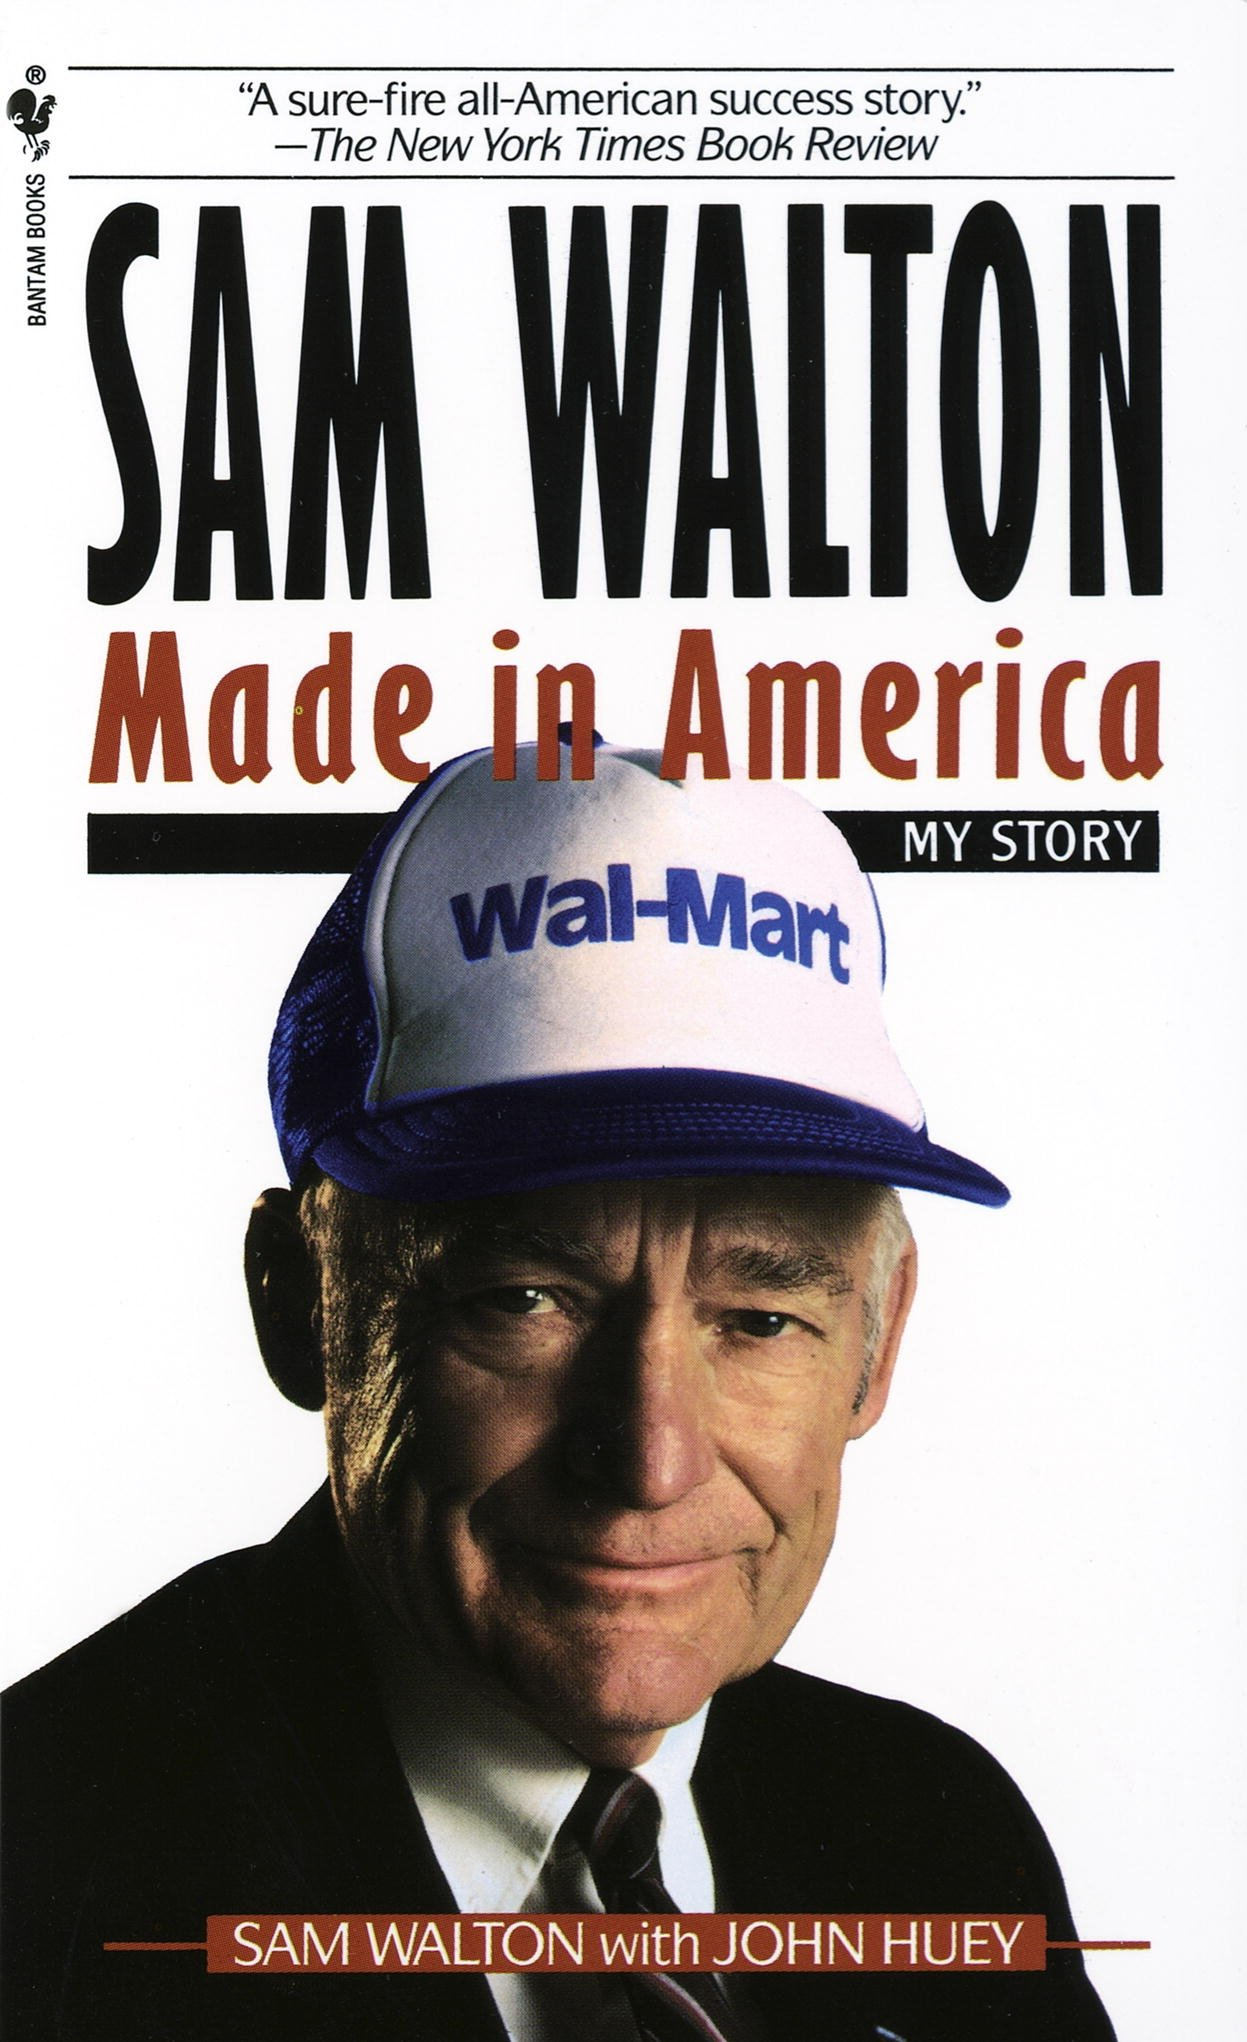 A story of how Walmart came to be. The frugality of Sam Walton. And more importantly, business and life lessons that come from focusing entirely on people—your customers and your employees.